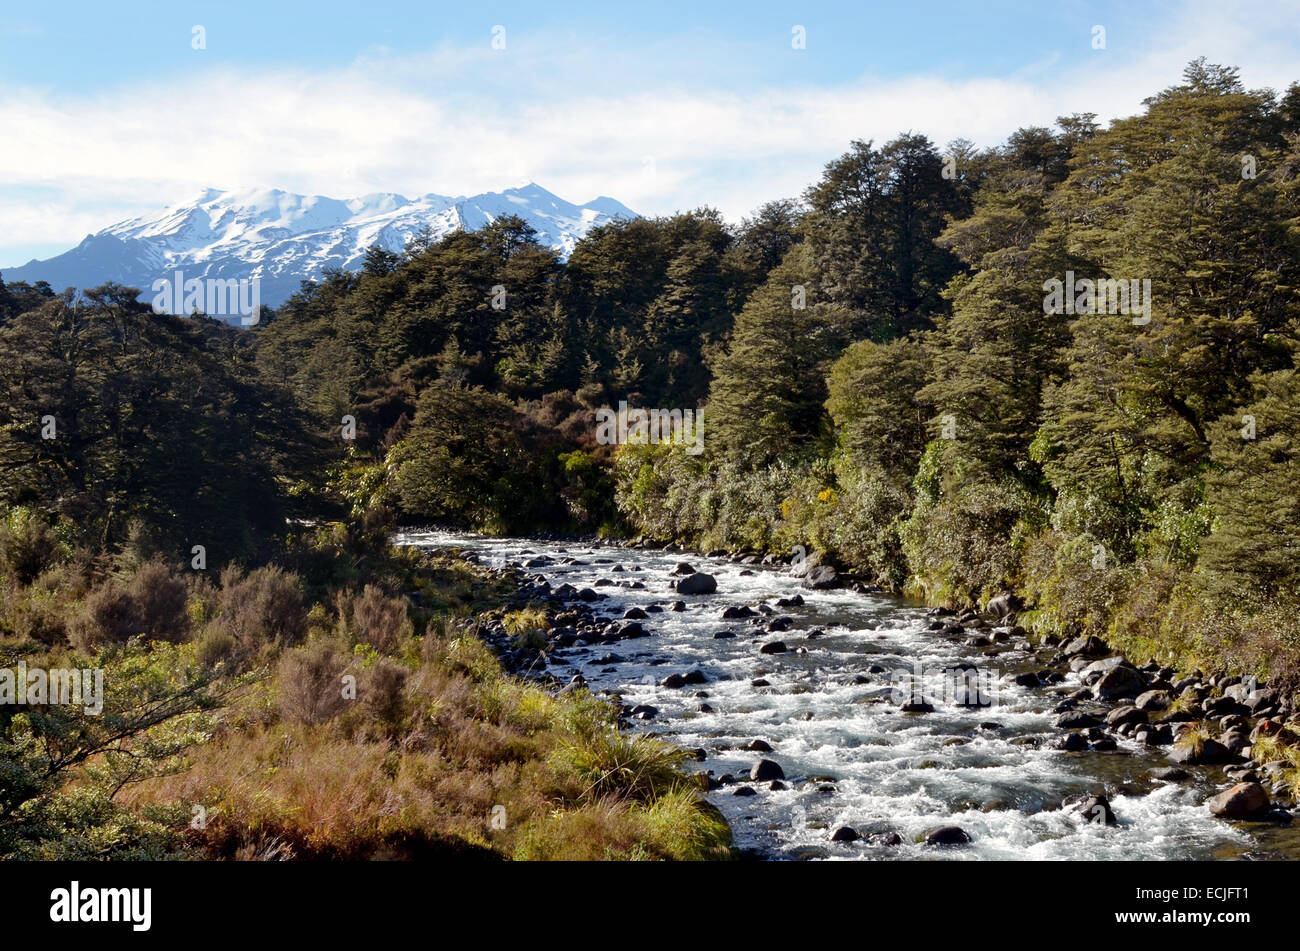 Mahuia River in Tongariro National Park.It's the oldest national park in New Zealand,located in the central - Stock Image